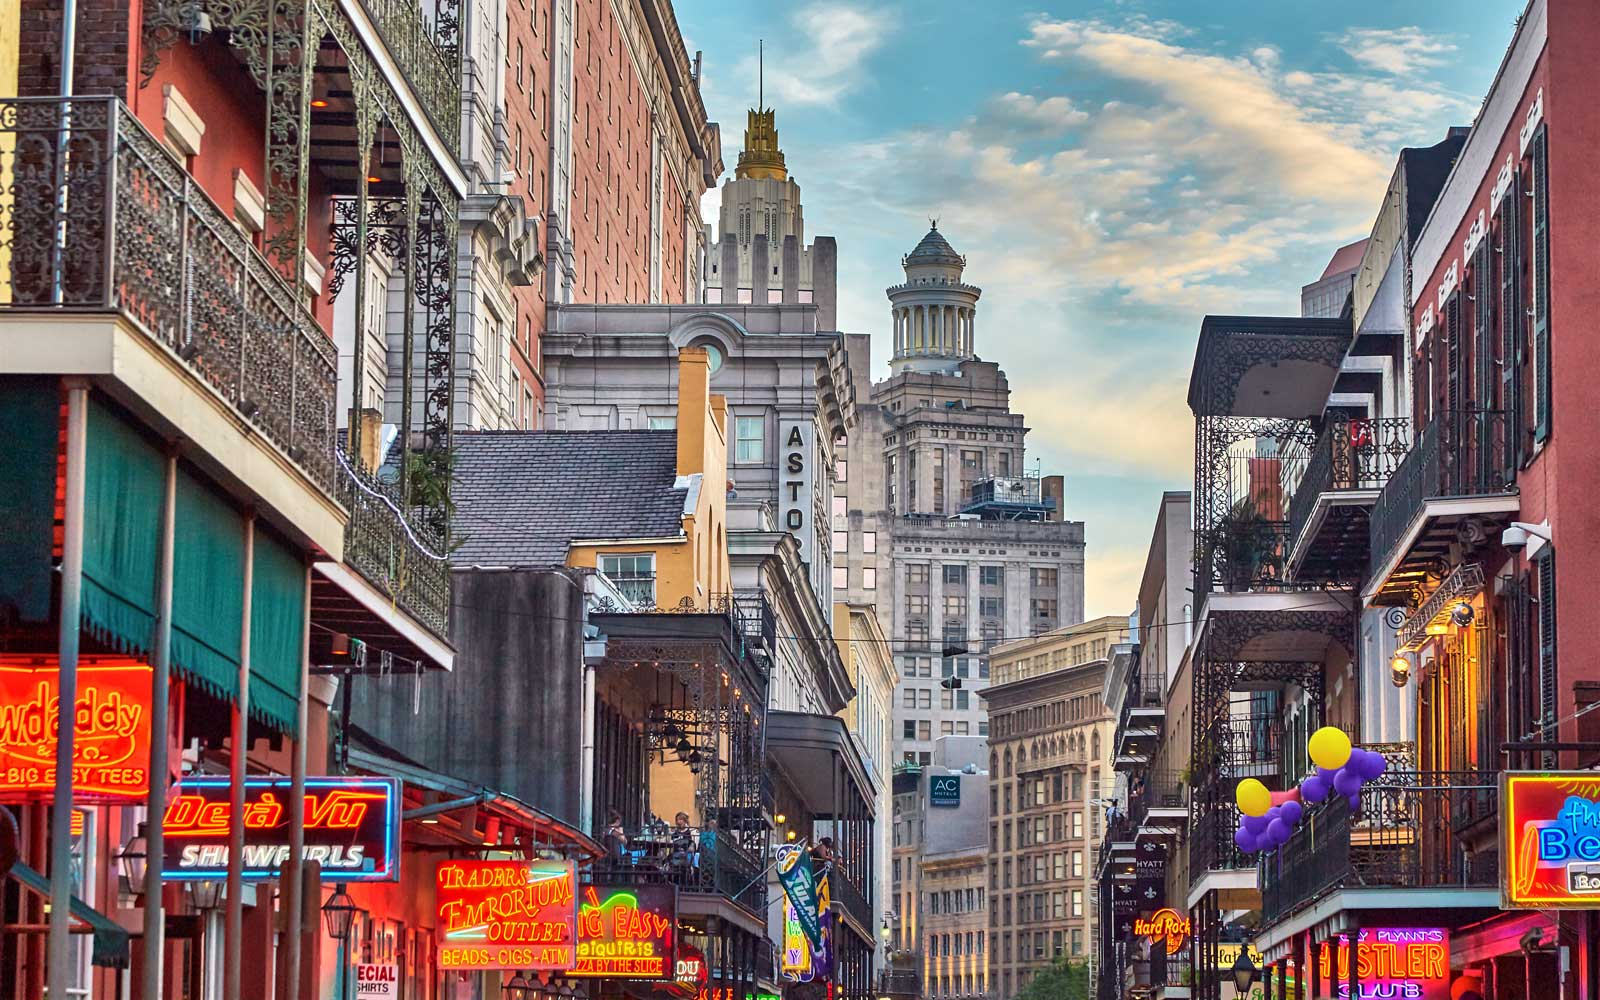 2. New Orleans